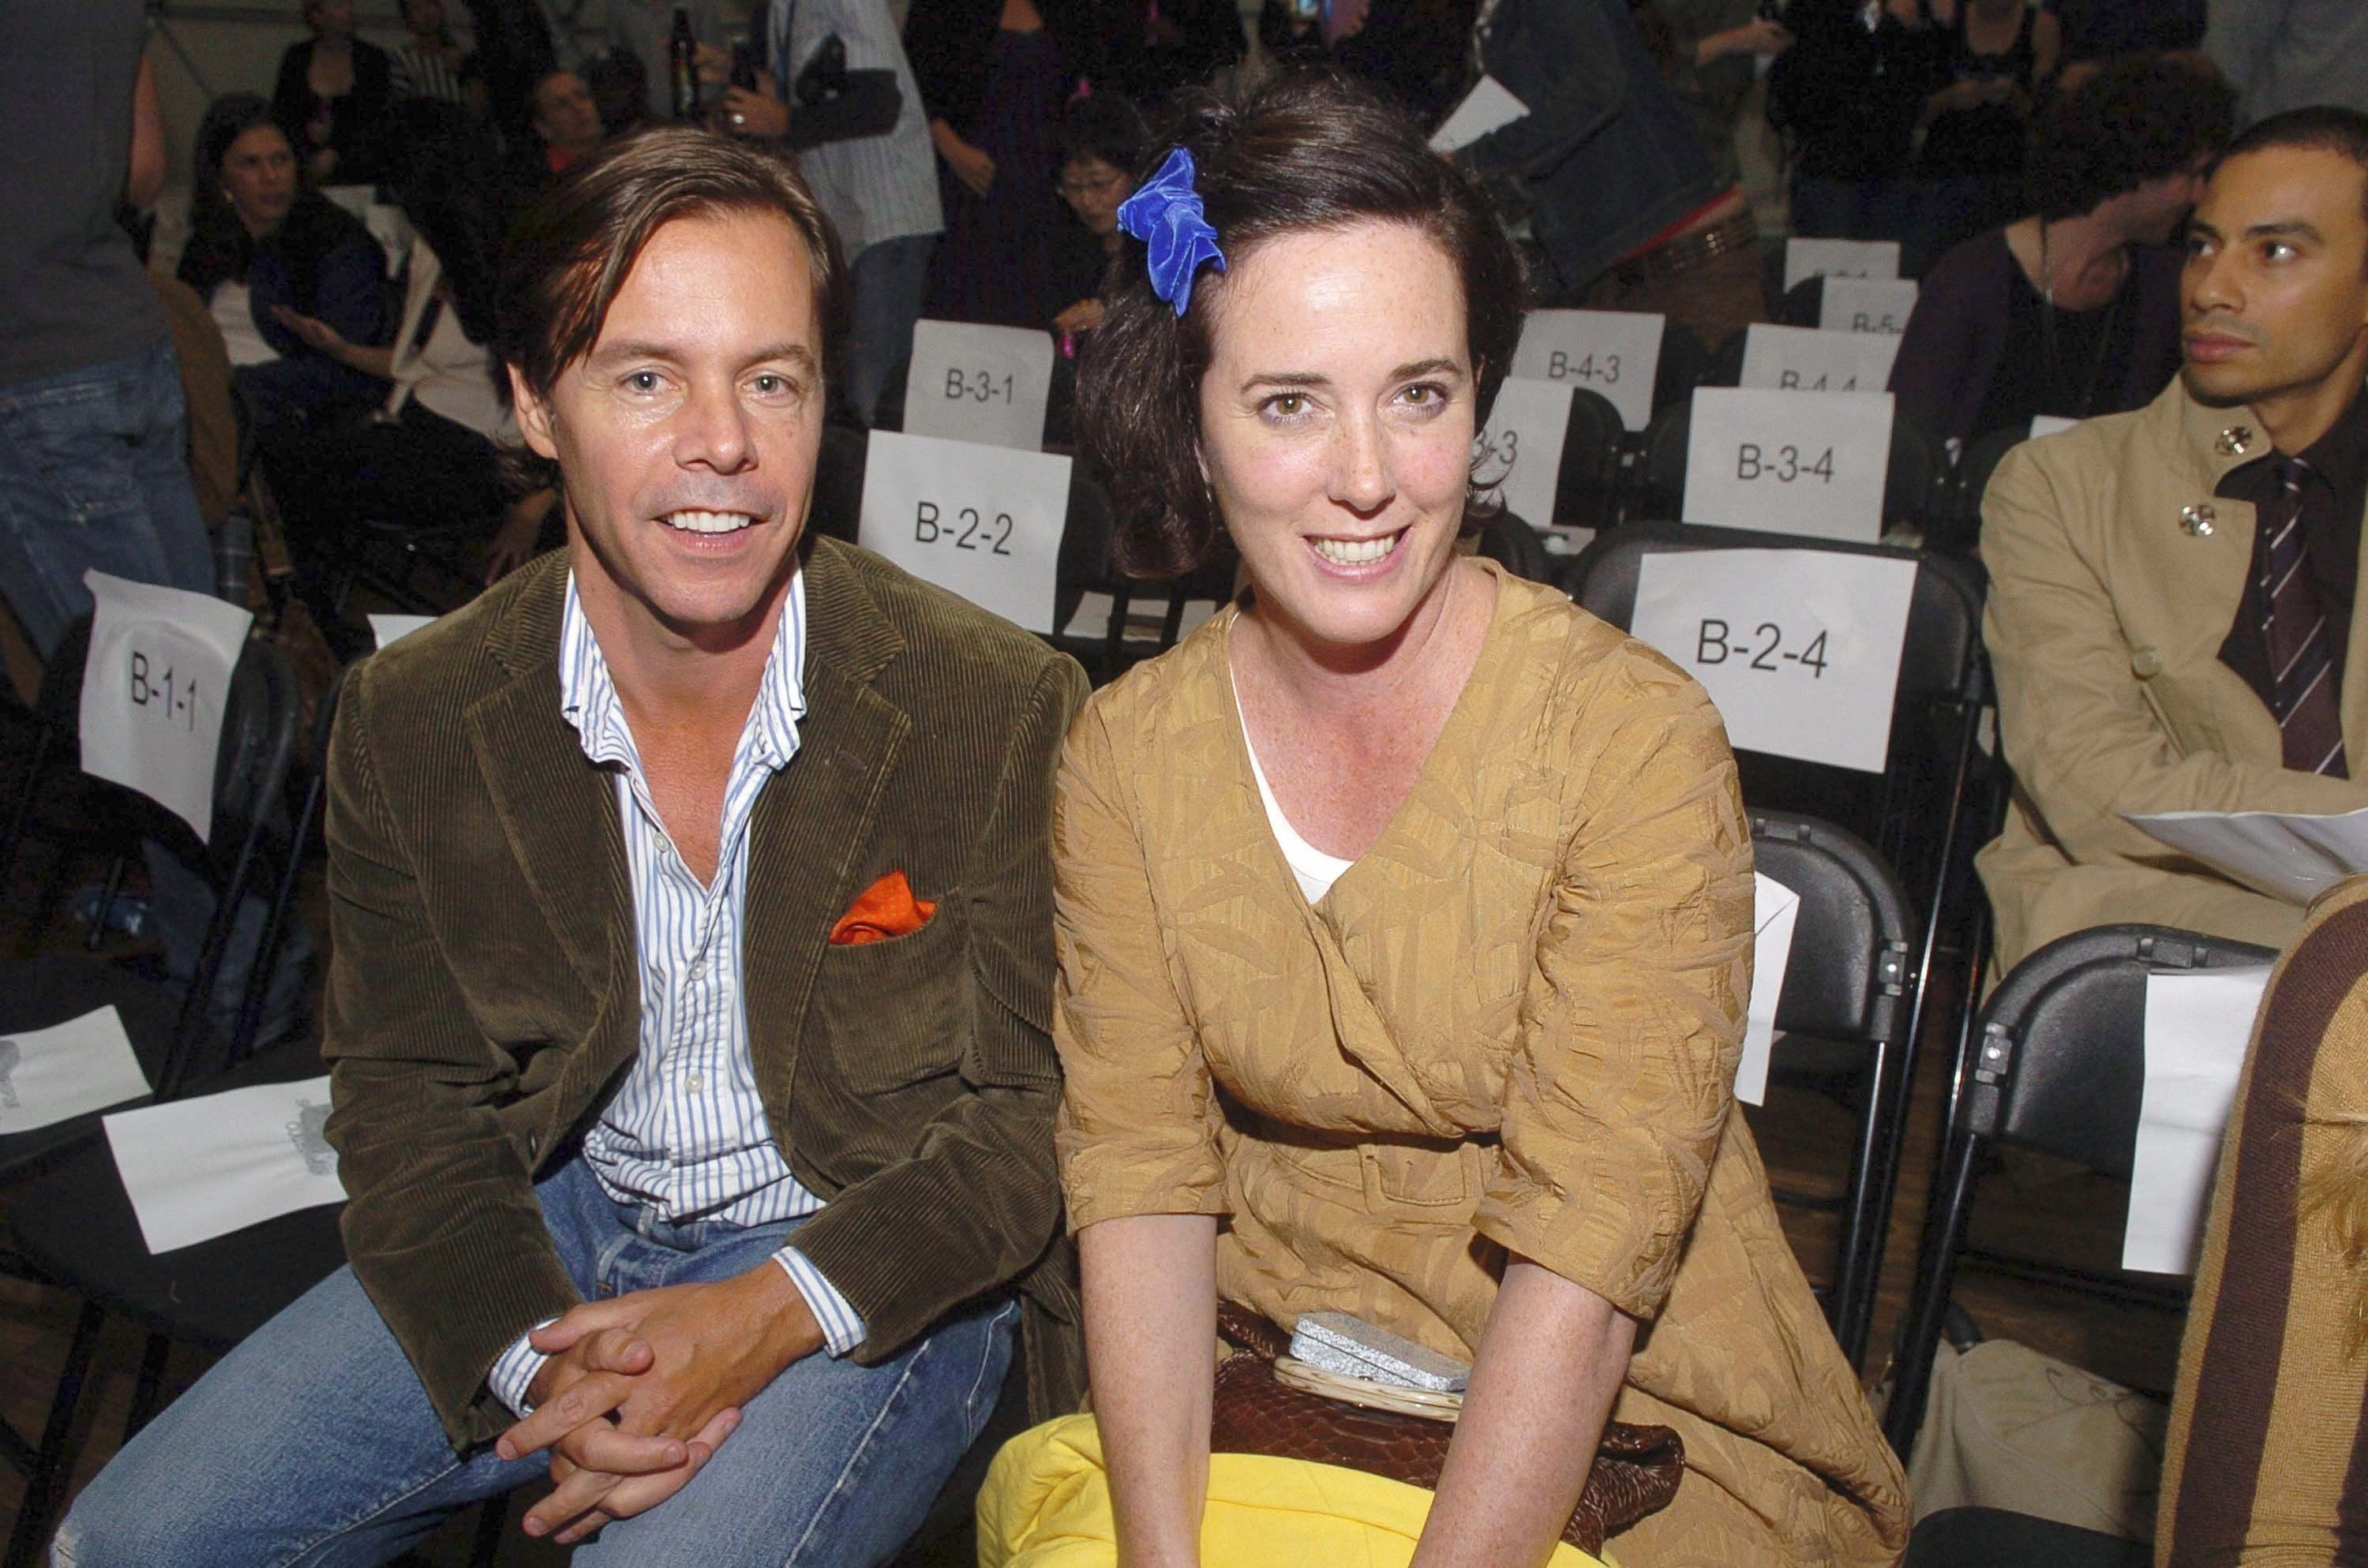 Kate Spade's husband says she battled demons, death was complete shock